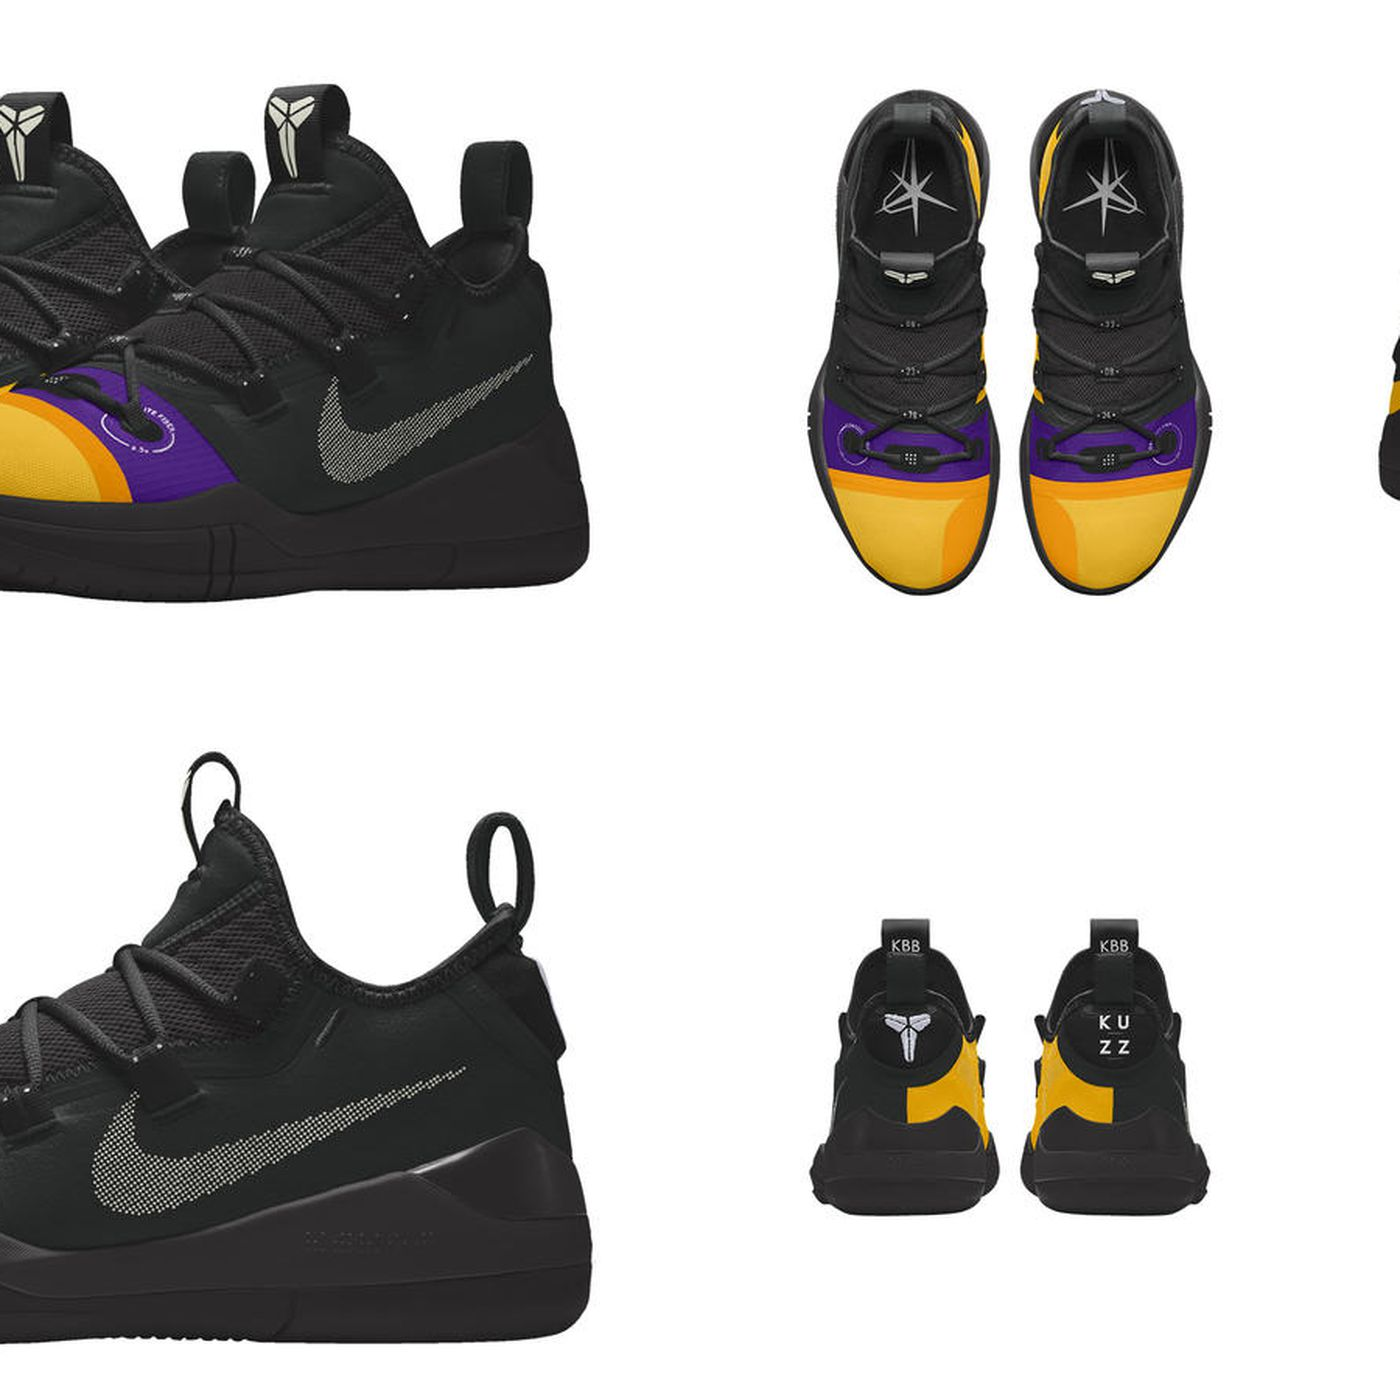 lowest price f06eb ee9b2 Lakers News  Kyle Kuzma to wear customized Nike Kobe AD for NBA opening  week - Silver Screen and Roll